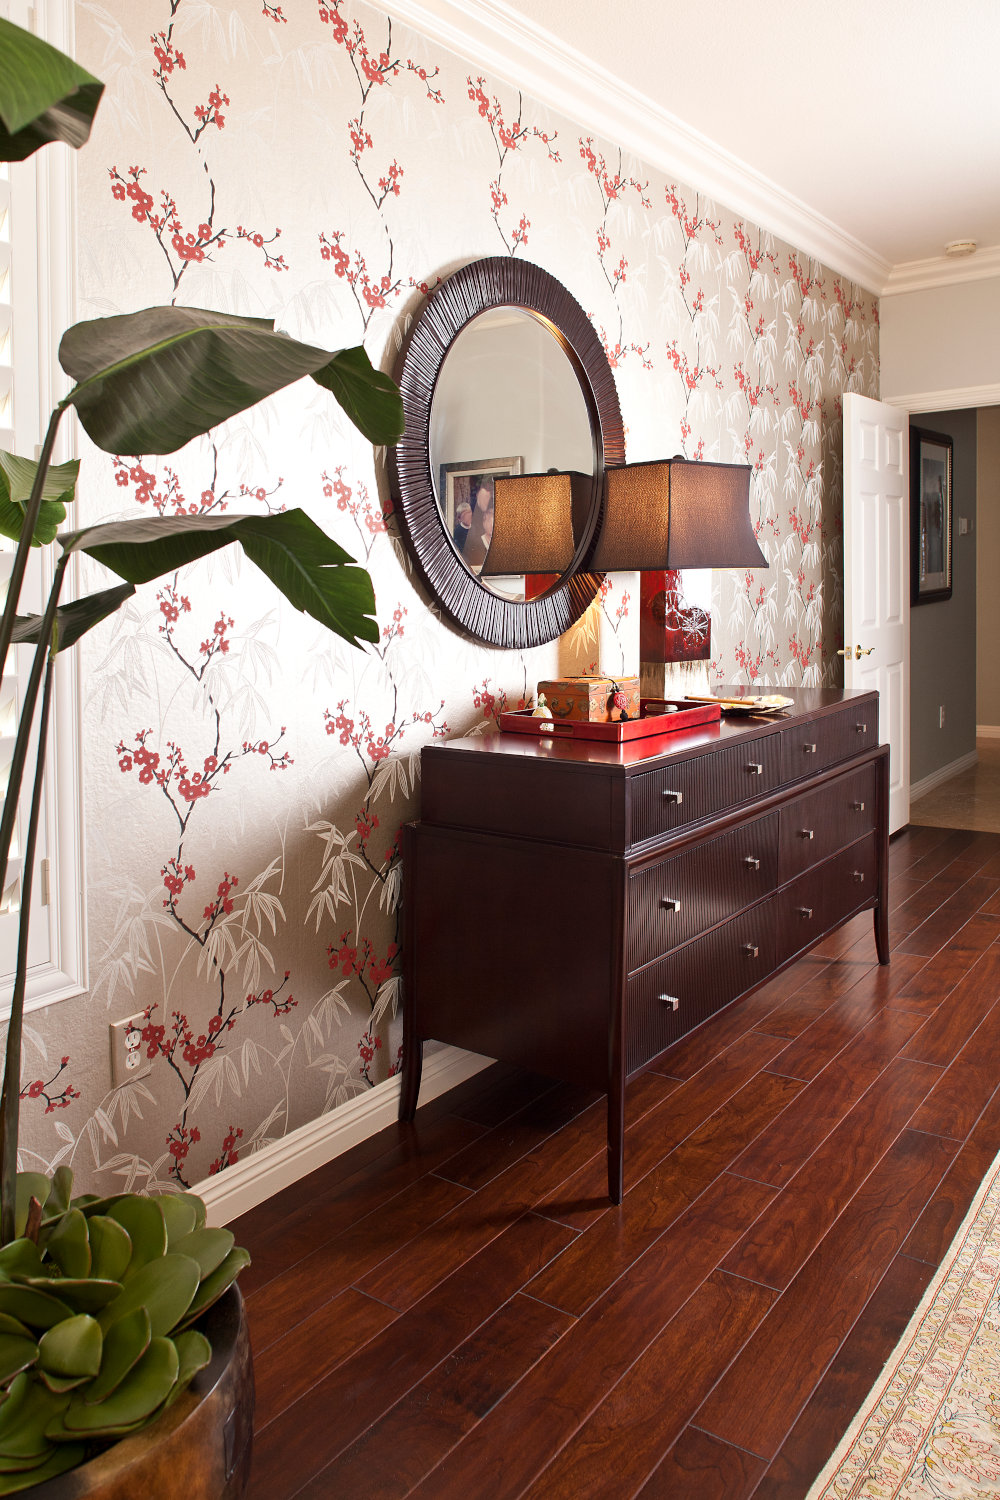 Master bedroom cherry blossom wallpaper, credence with round mirror, red table lamp and wood floor.